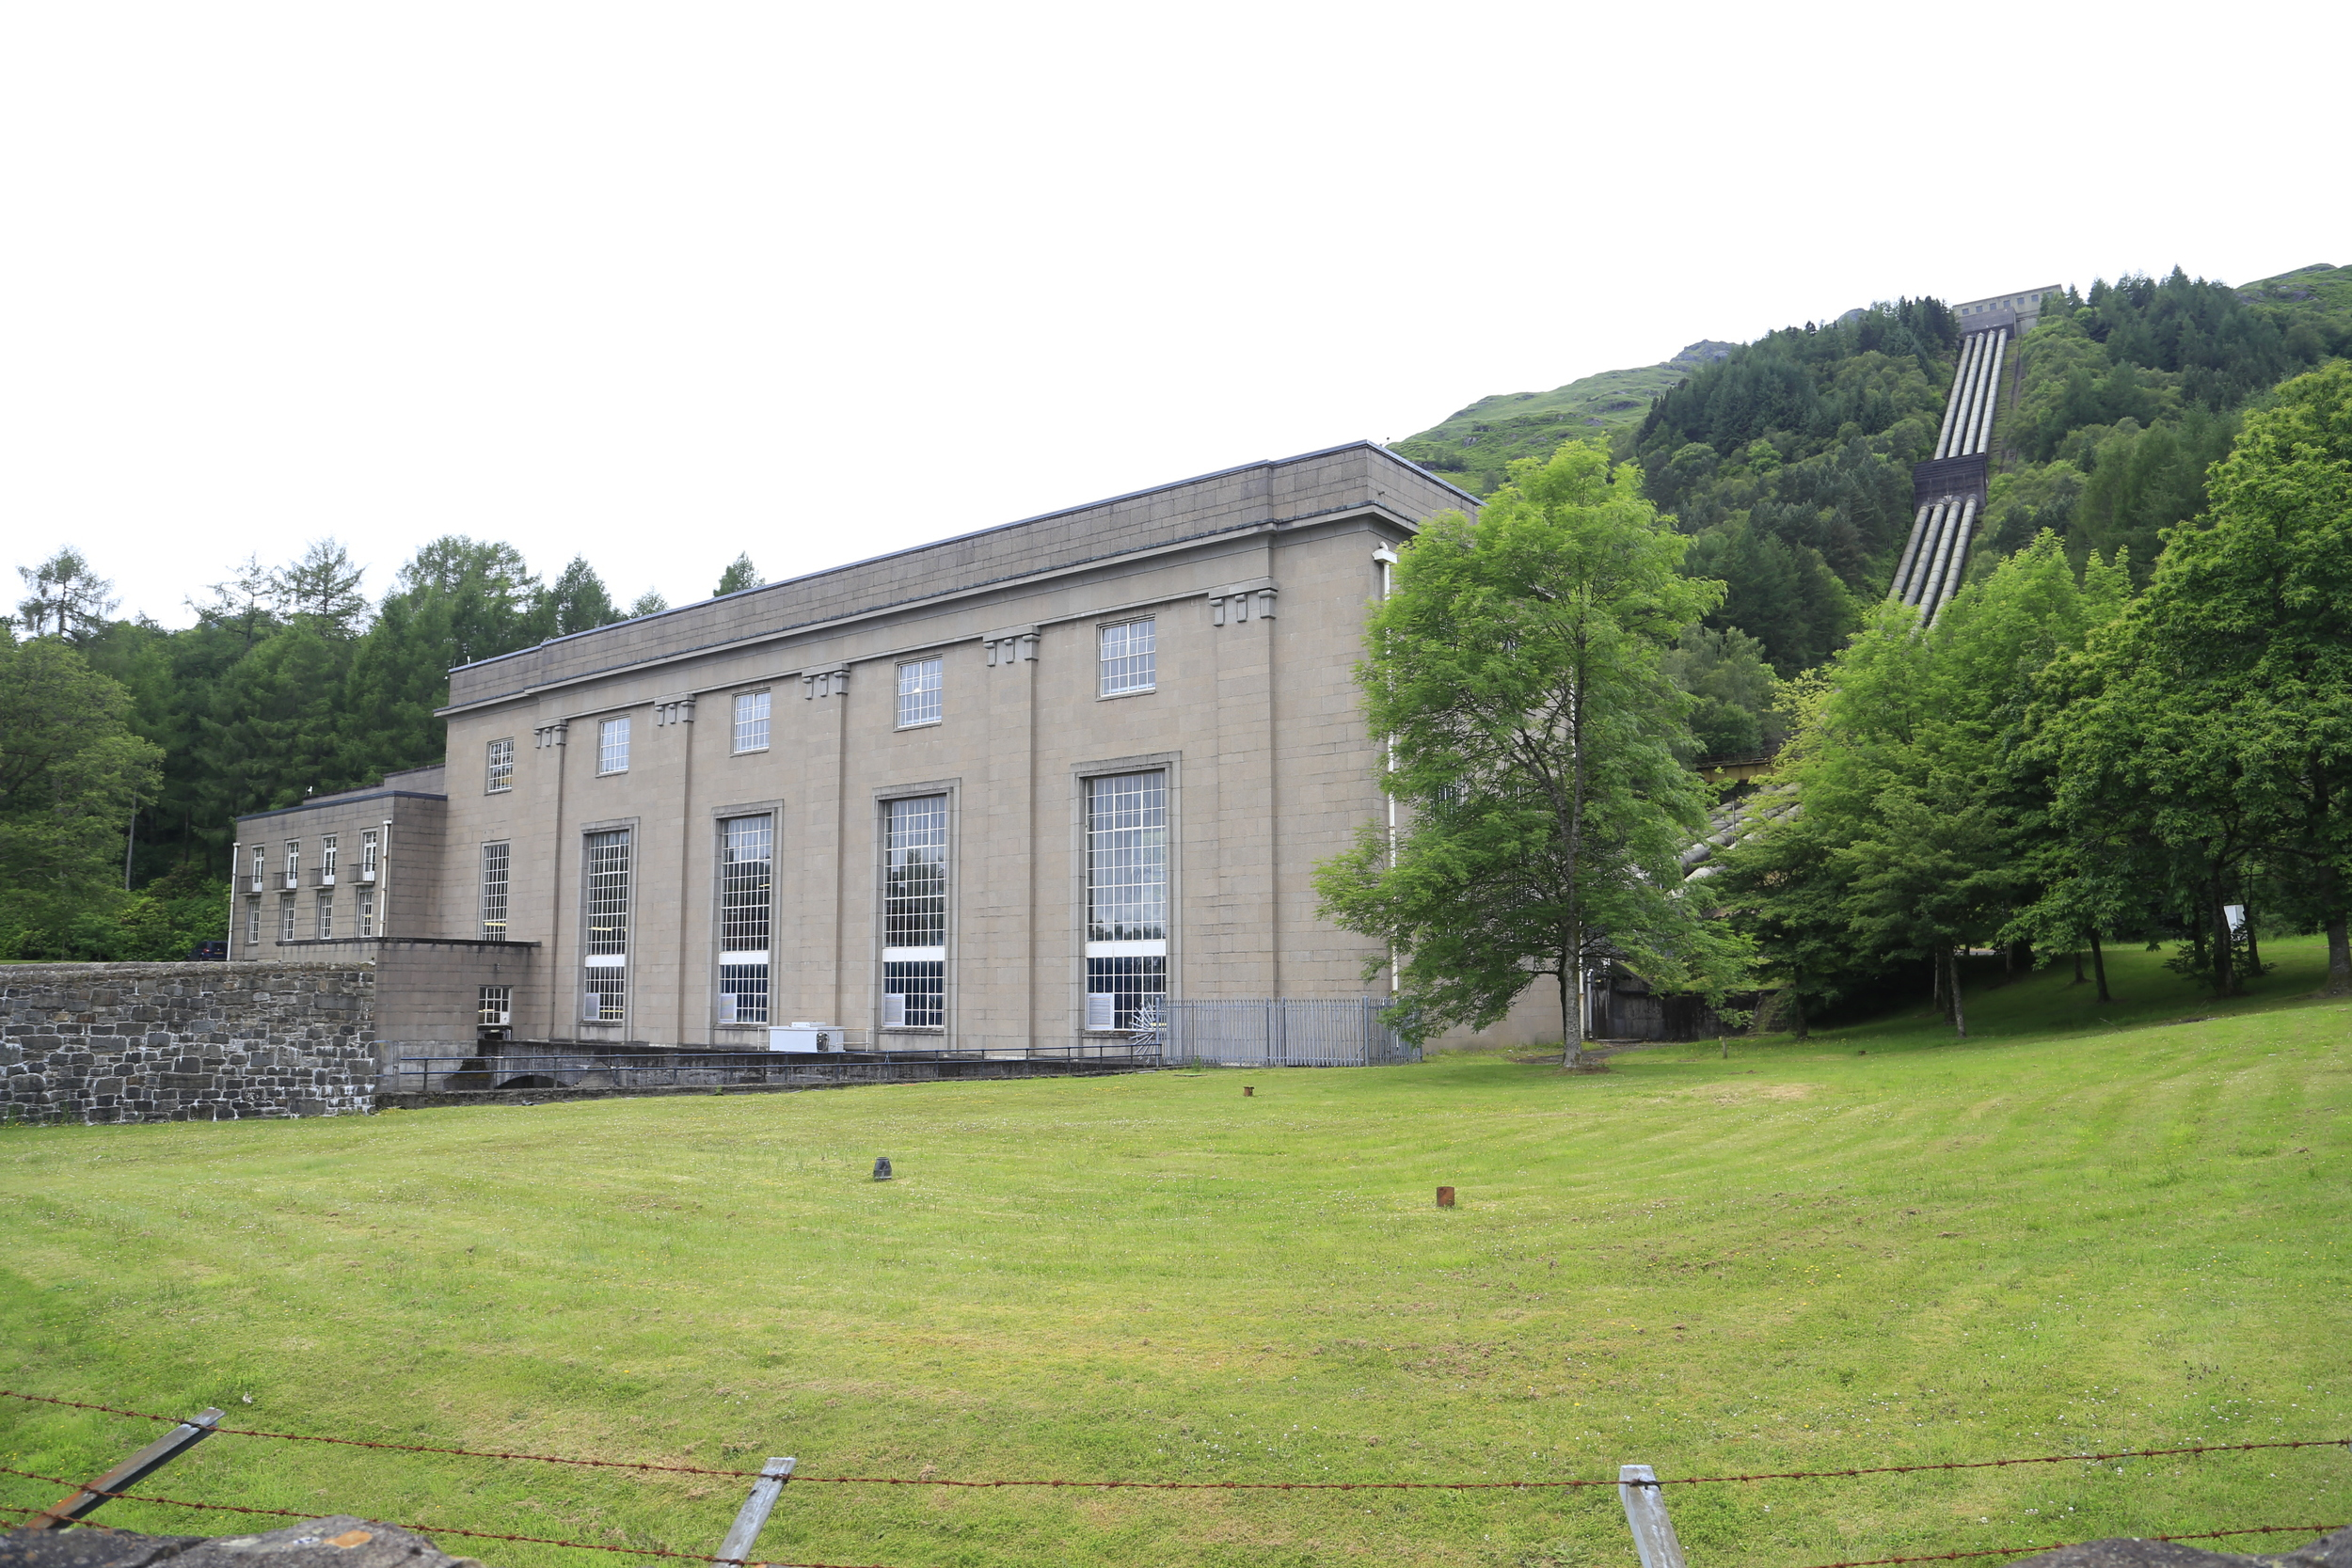 hydro, power station, scotland, cycle, cyce touring, cycle holiday, bicycle touring